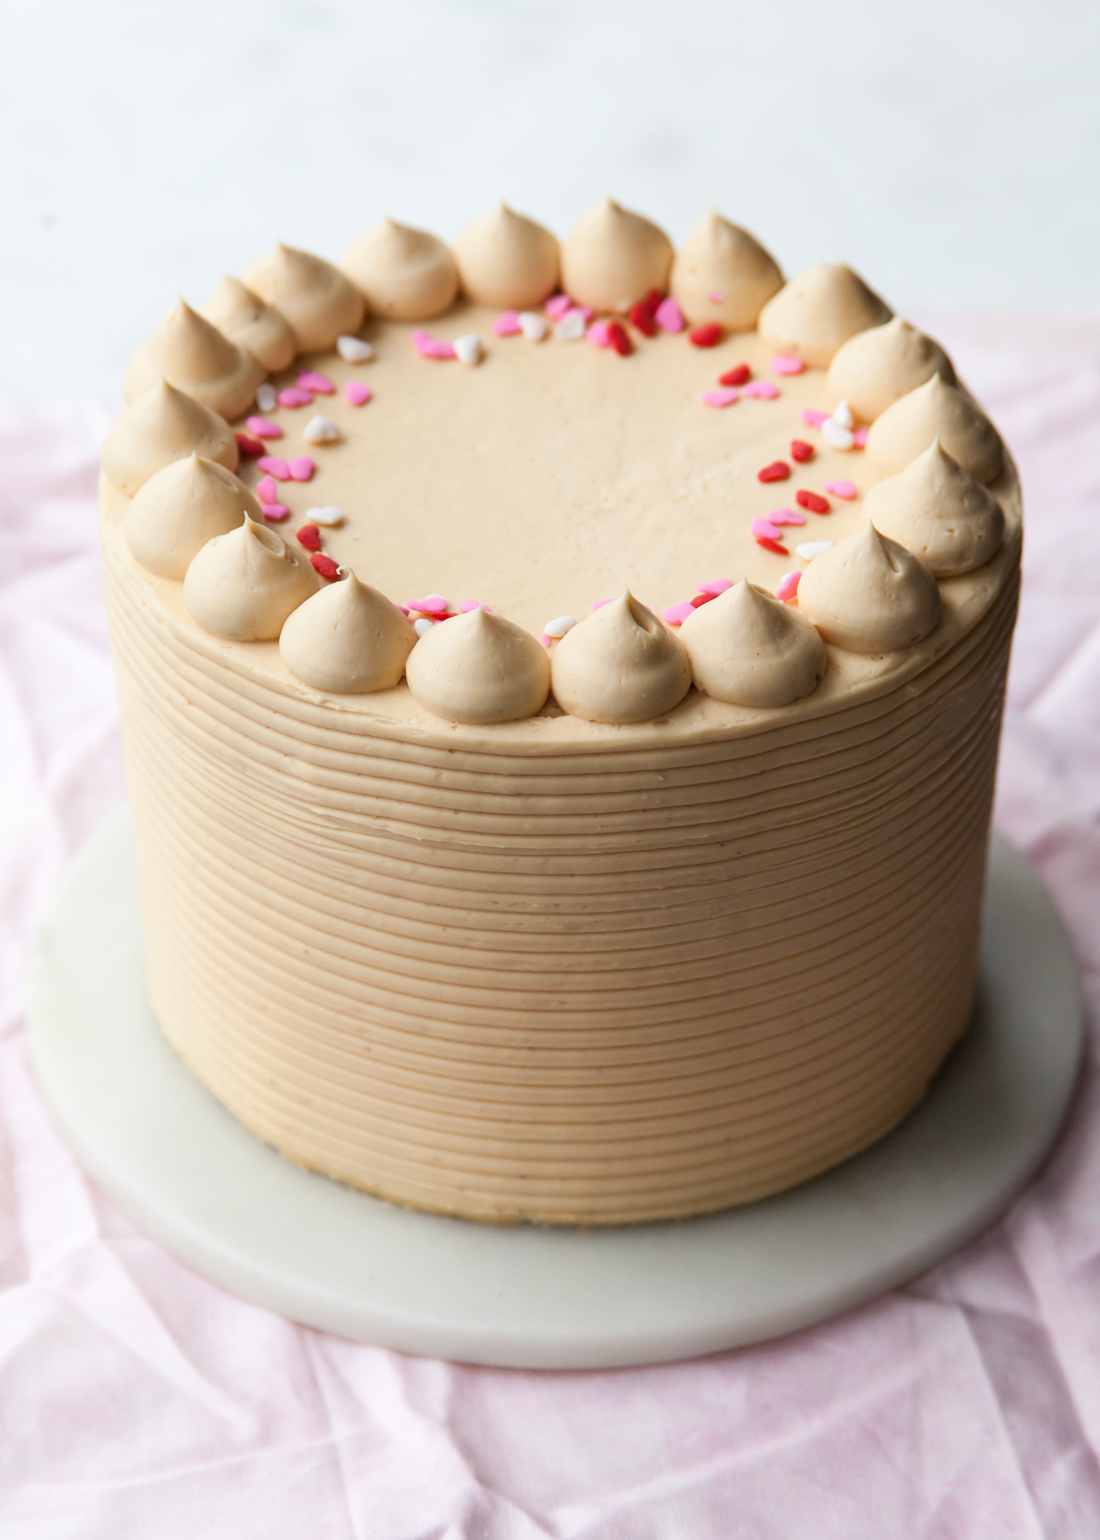 Chocolate cake with caramel pastry cream and caramel buttercream for Valentine's Day.